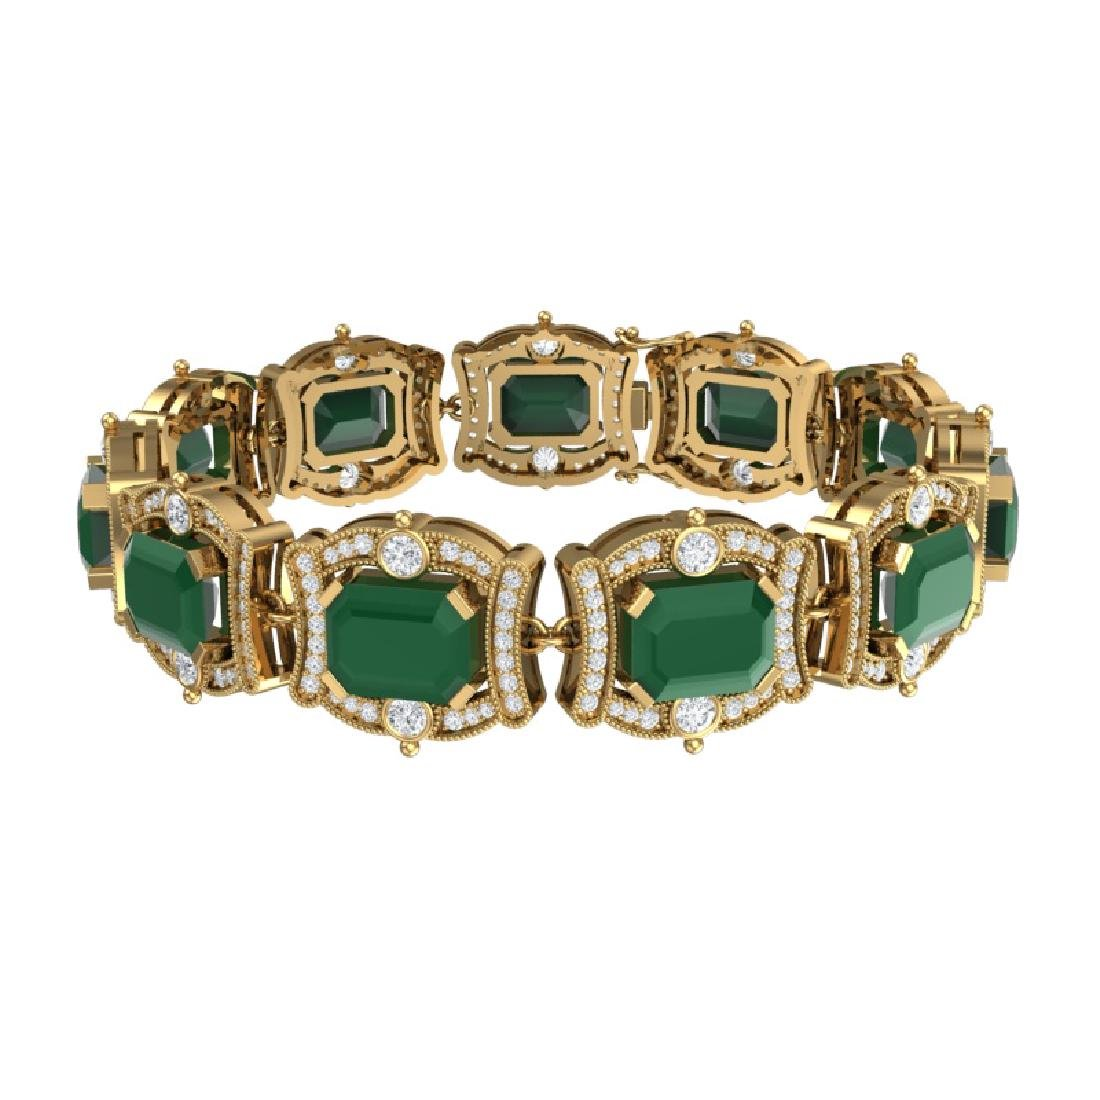 43.87 CTW Royalty Emerald & VS Diamond Bracelet 18K - 3